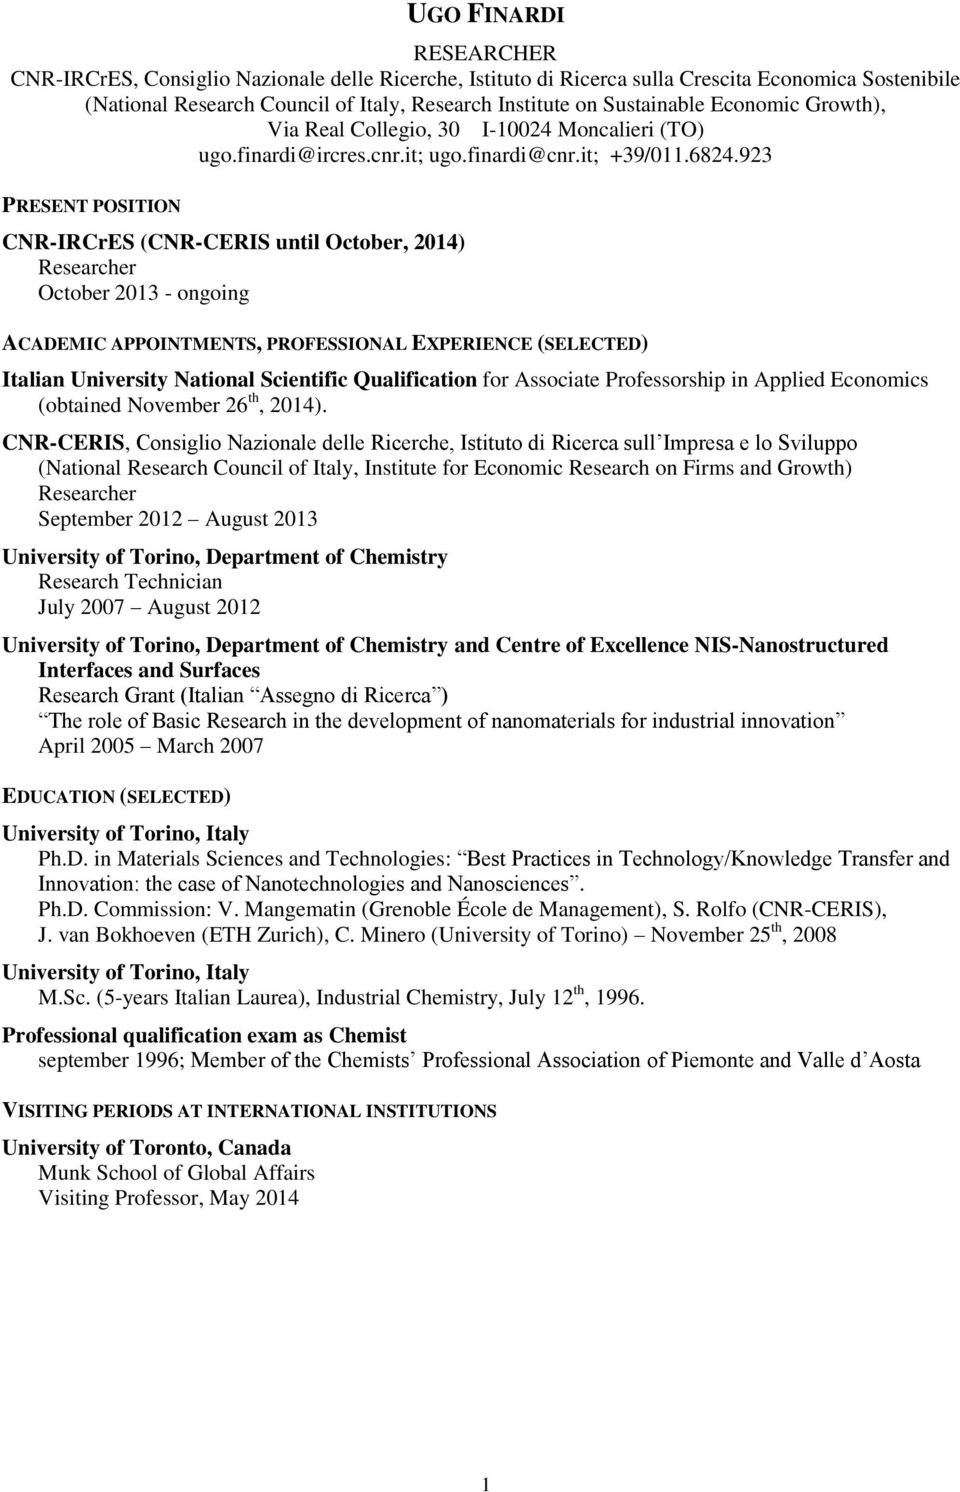 923 PRESENT POSITION CNR-IRCrES (CNR-CERIS until October, 2014) Researcher October 2013 - ongoing ACADEMIC APPOINTMENTS, PROFESSIONAL EXPERIENCE (SELECTED) Italian University National Scientific